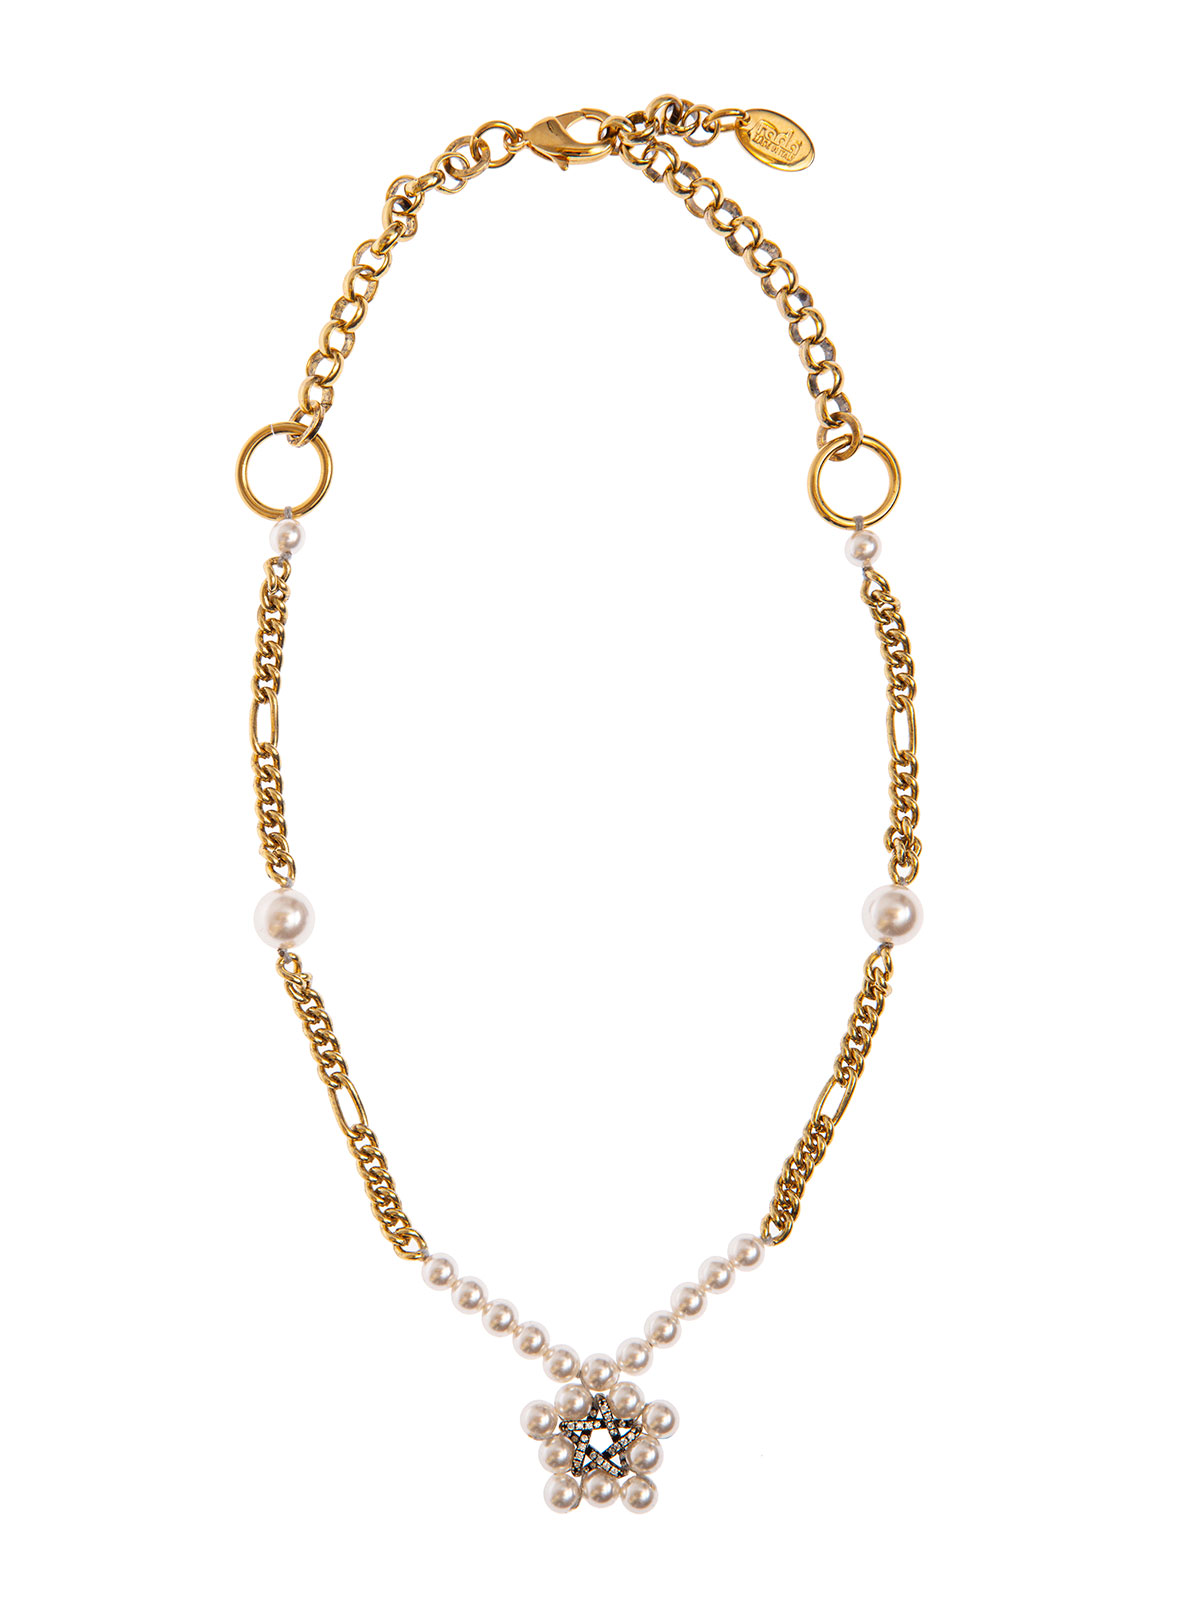 Chain and pearl necklace with crystal and pearl star